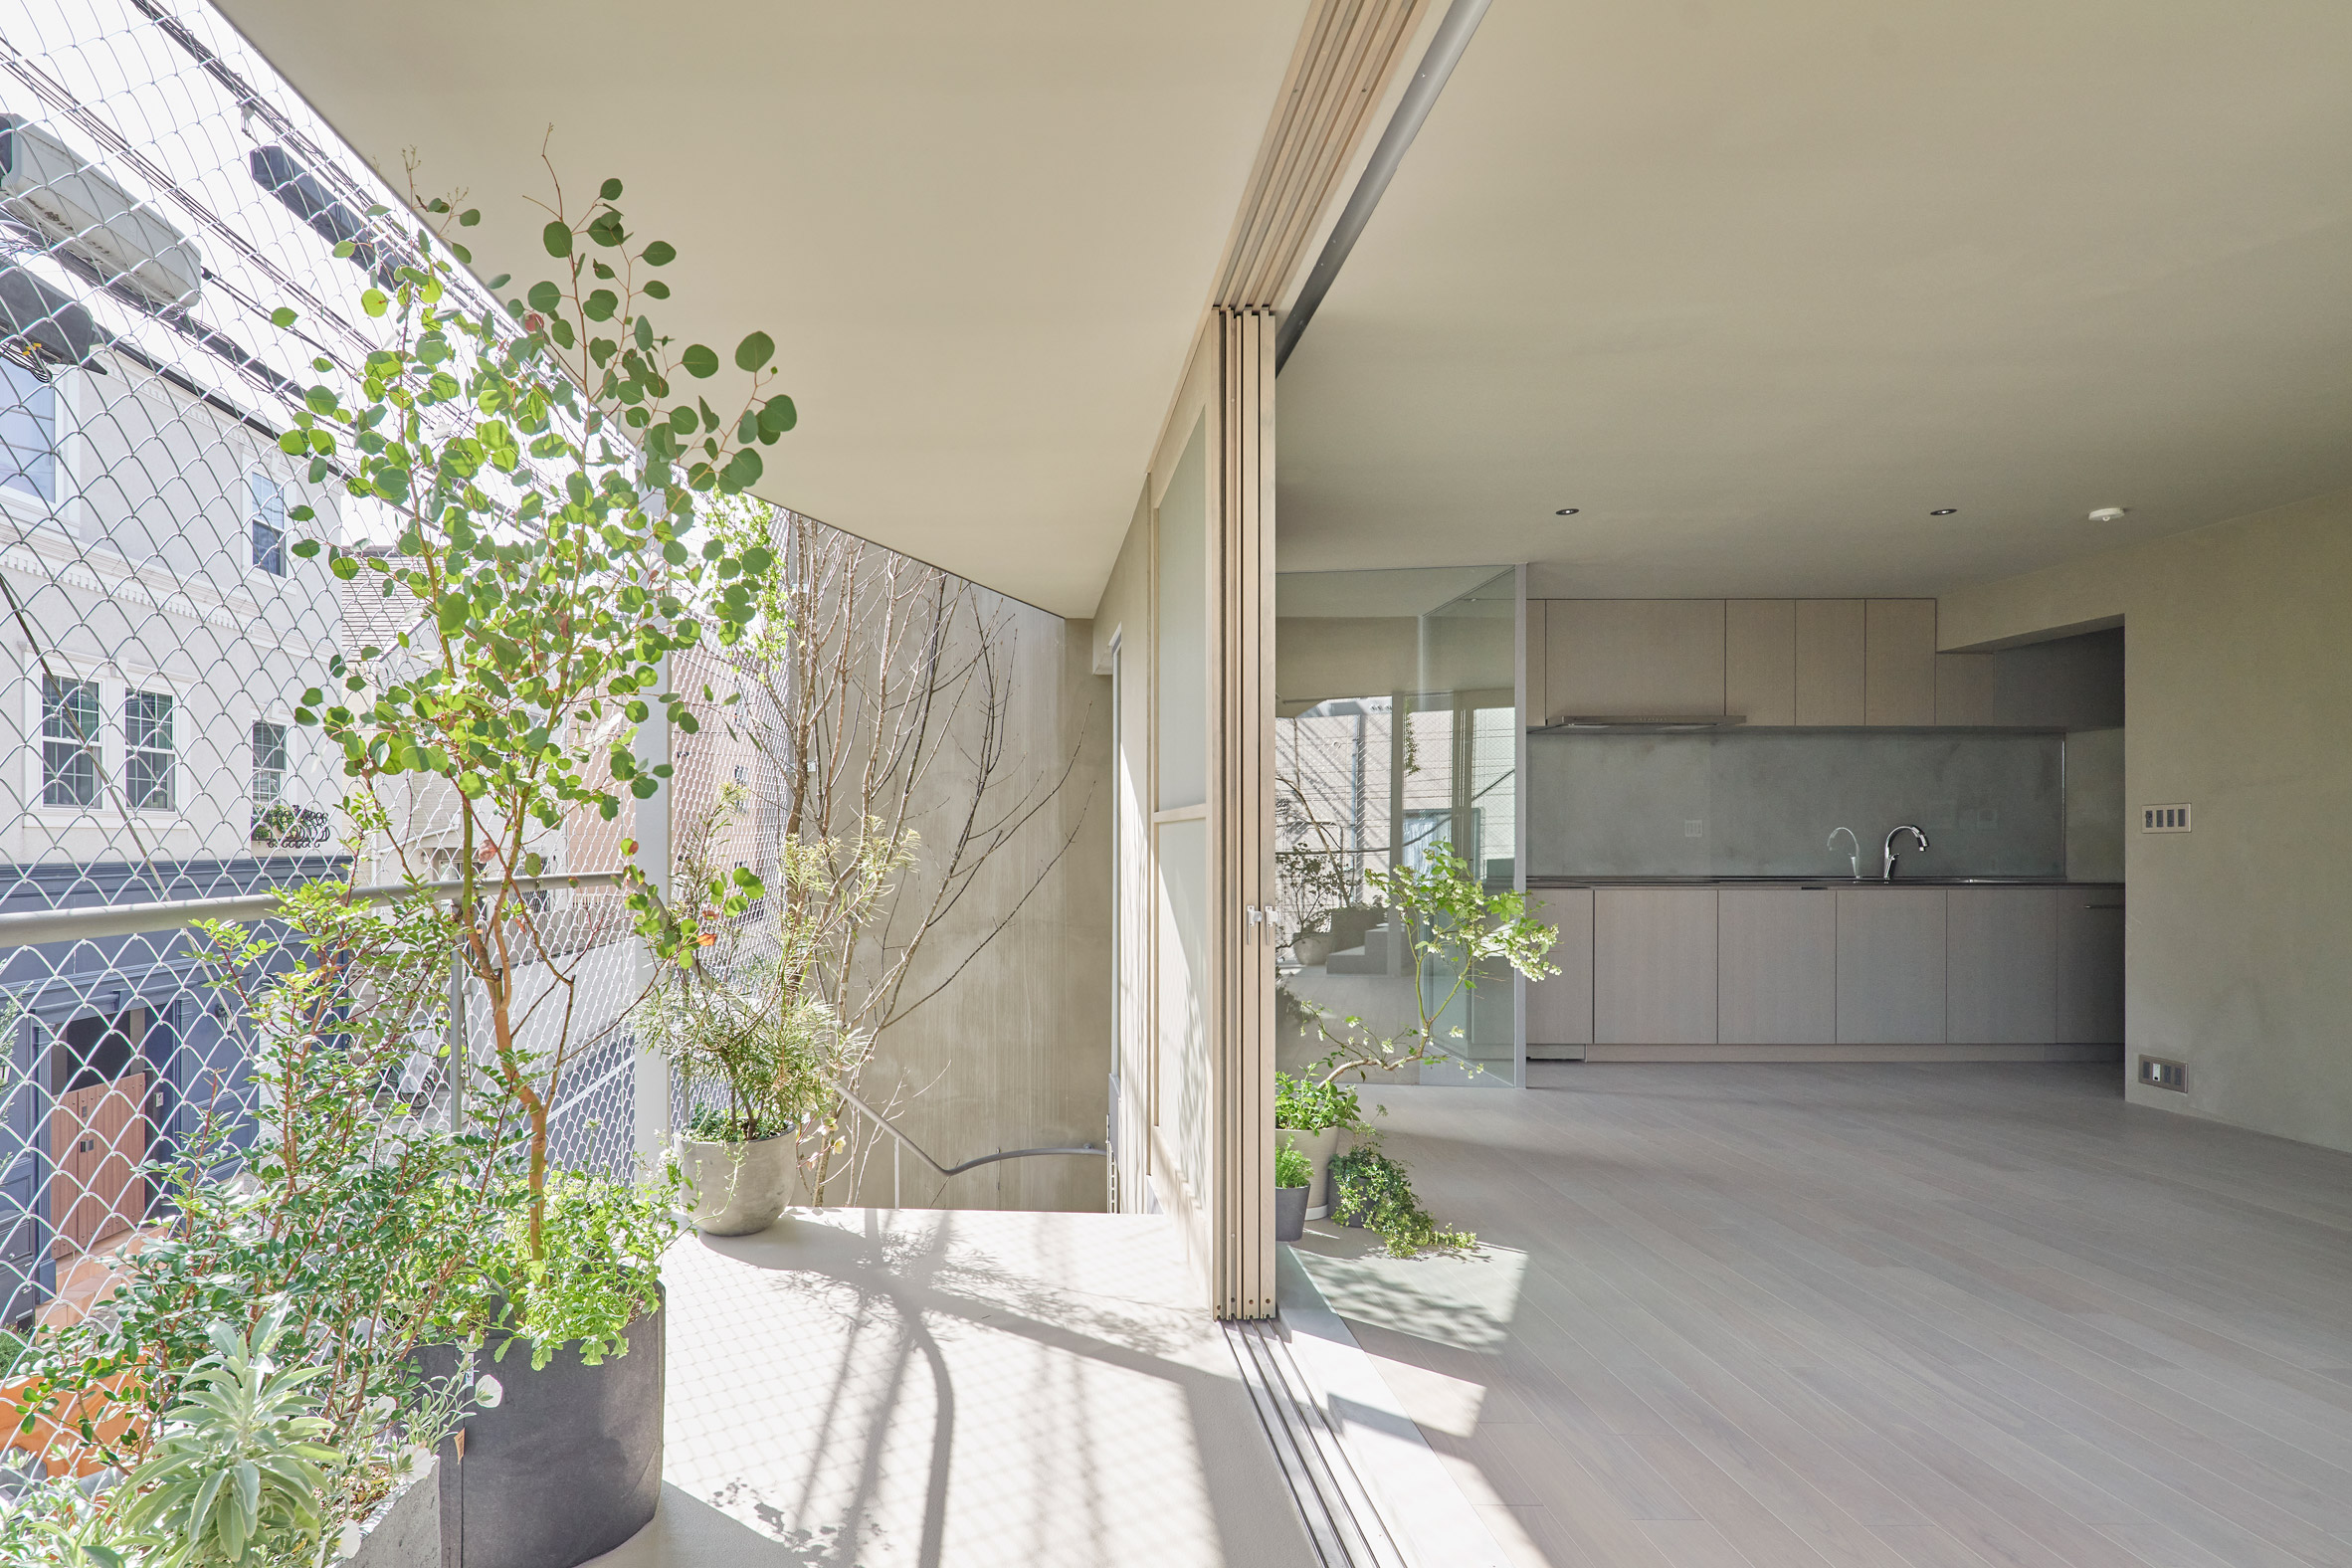 A kitchen with a terrace